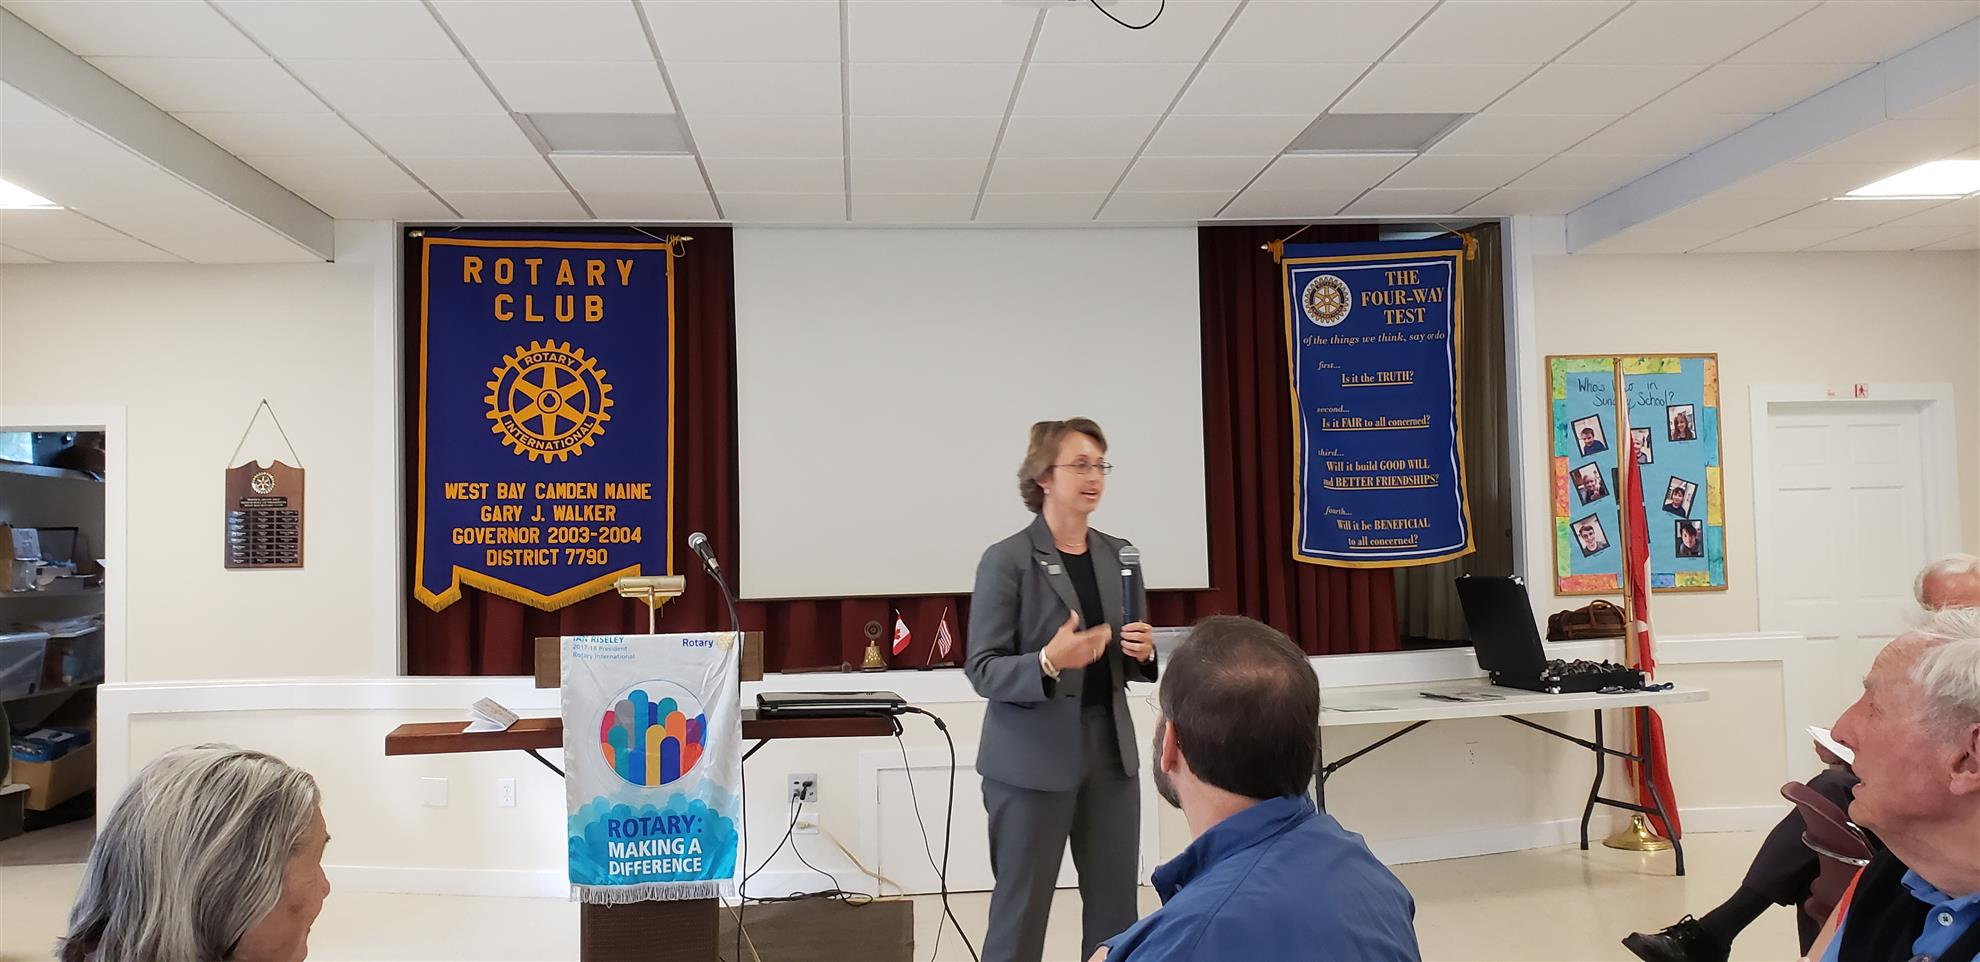 December 14, 2017 Meeting of West Bay Rotary (Dec 16, 2017)